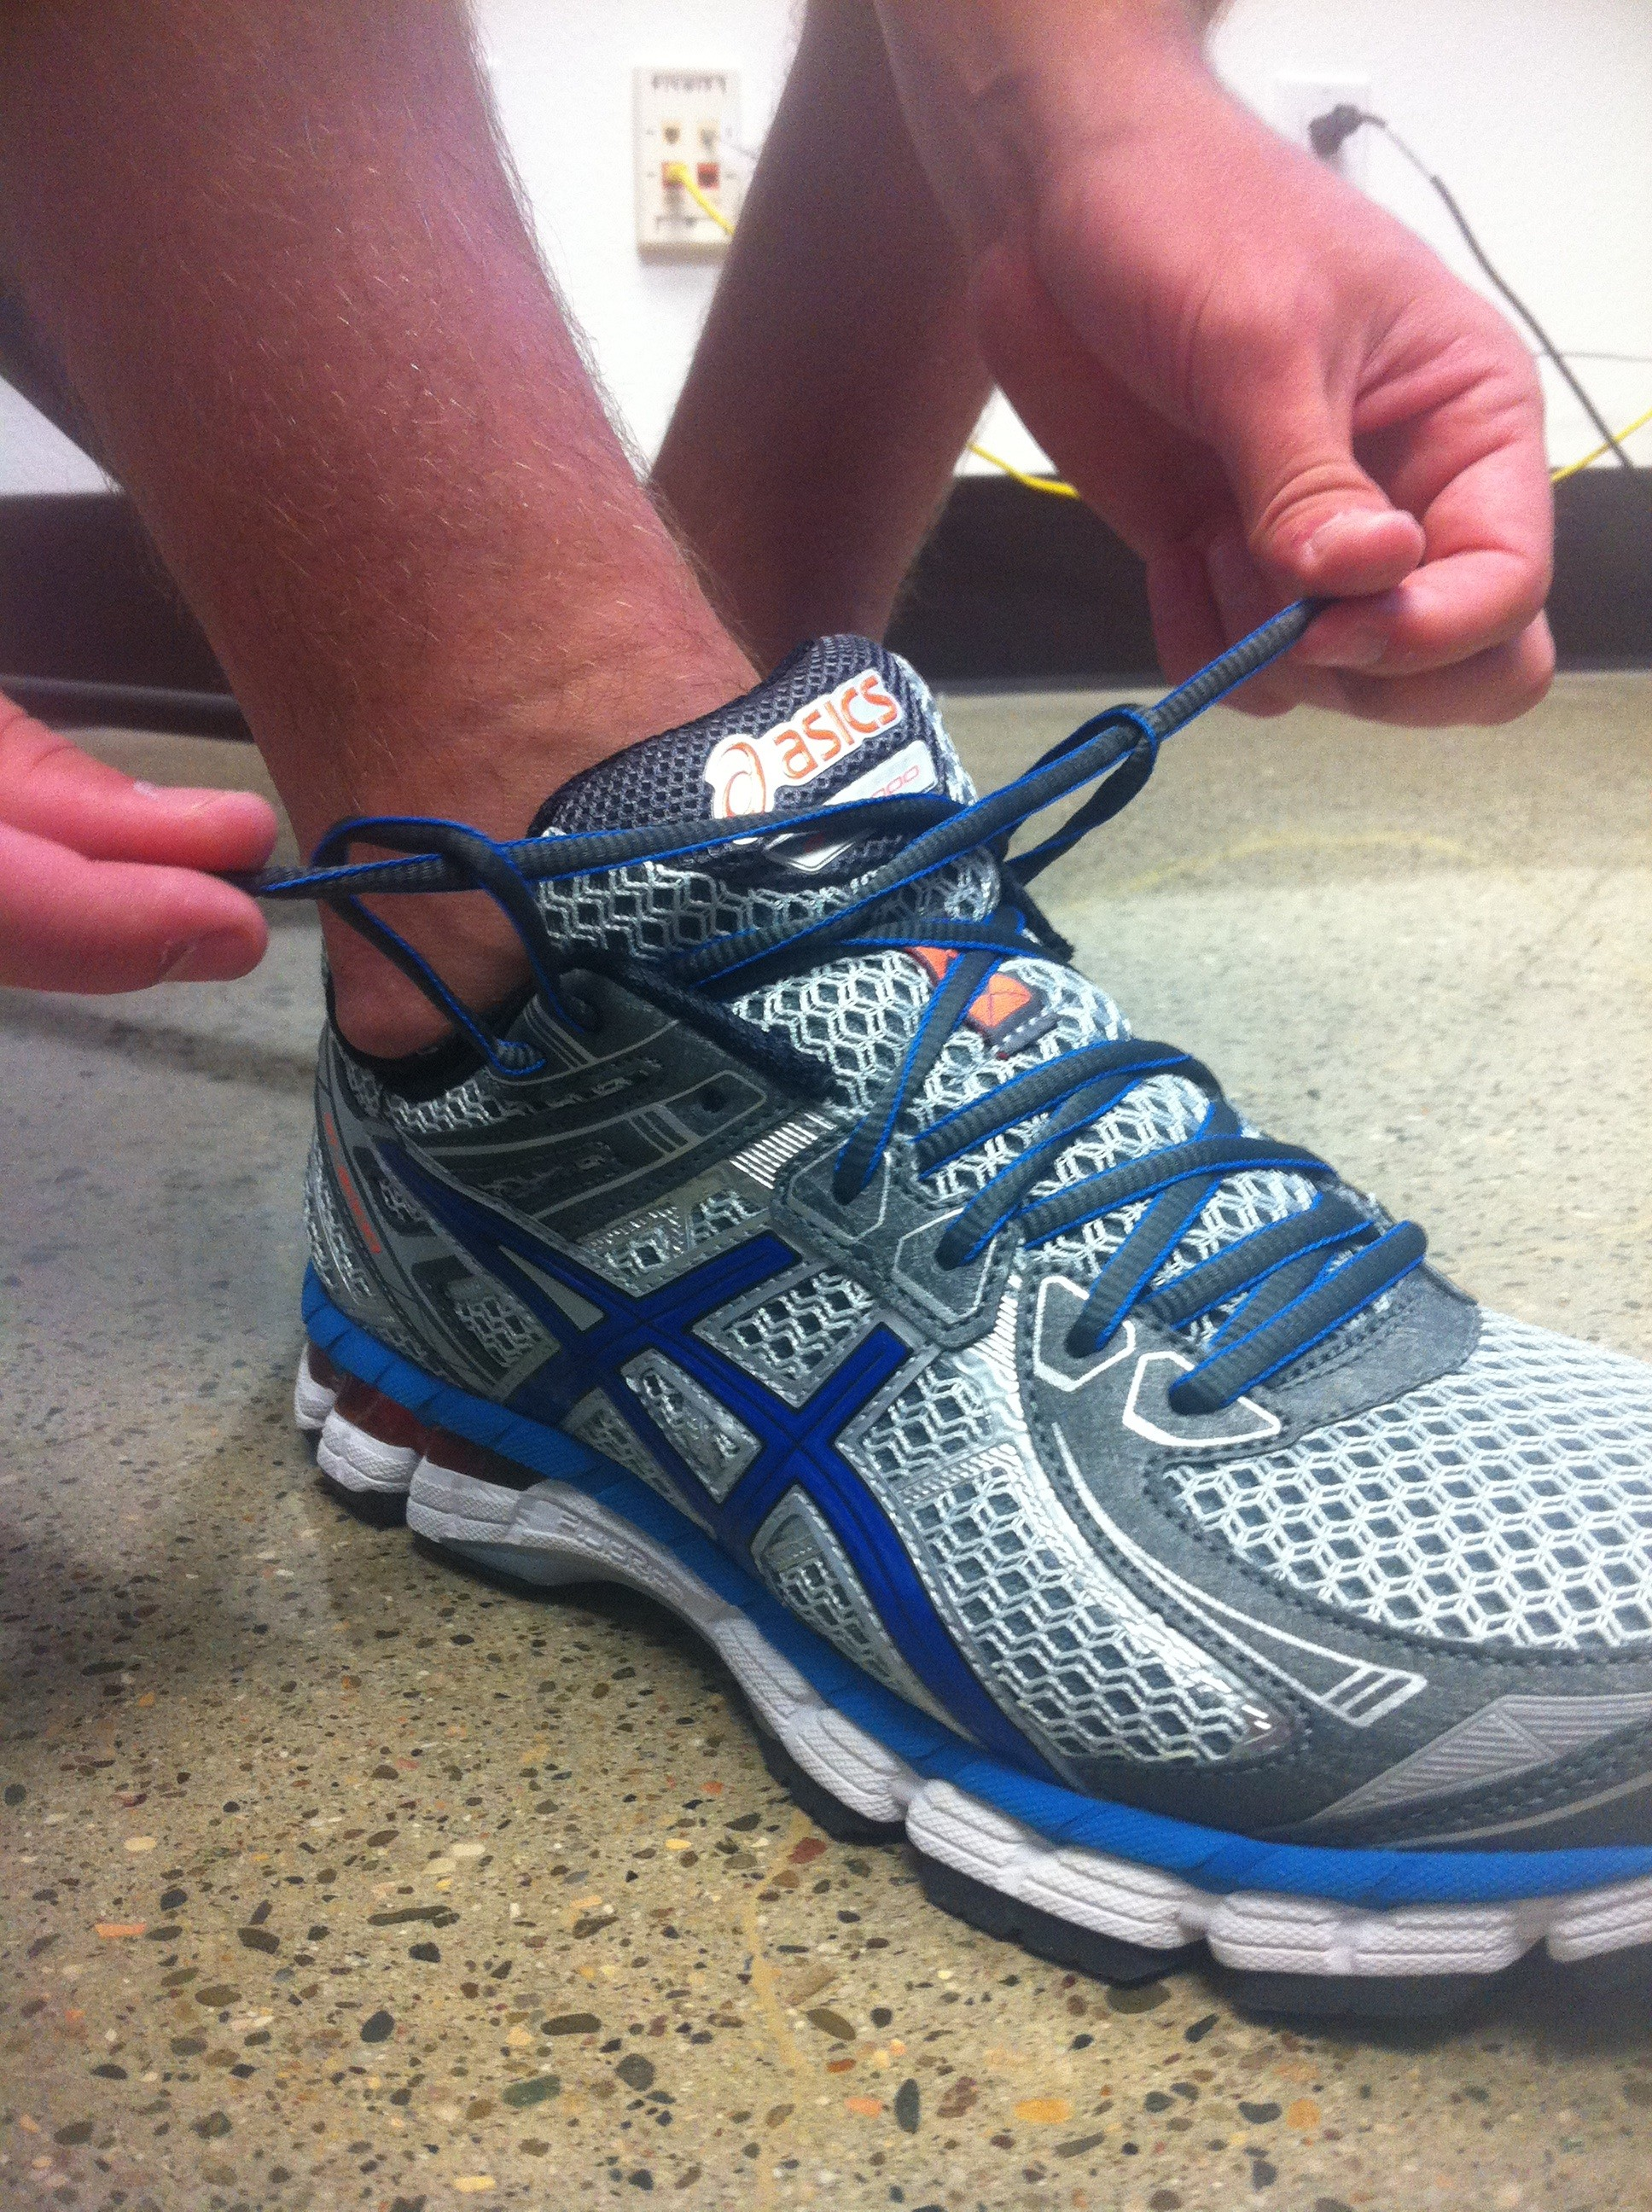 How To Lace Running Shoes For Heel Slippage